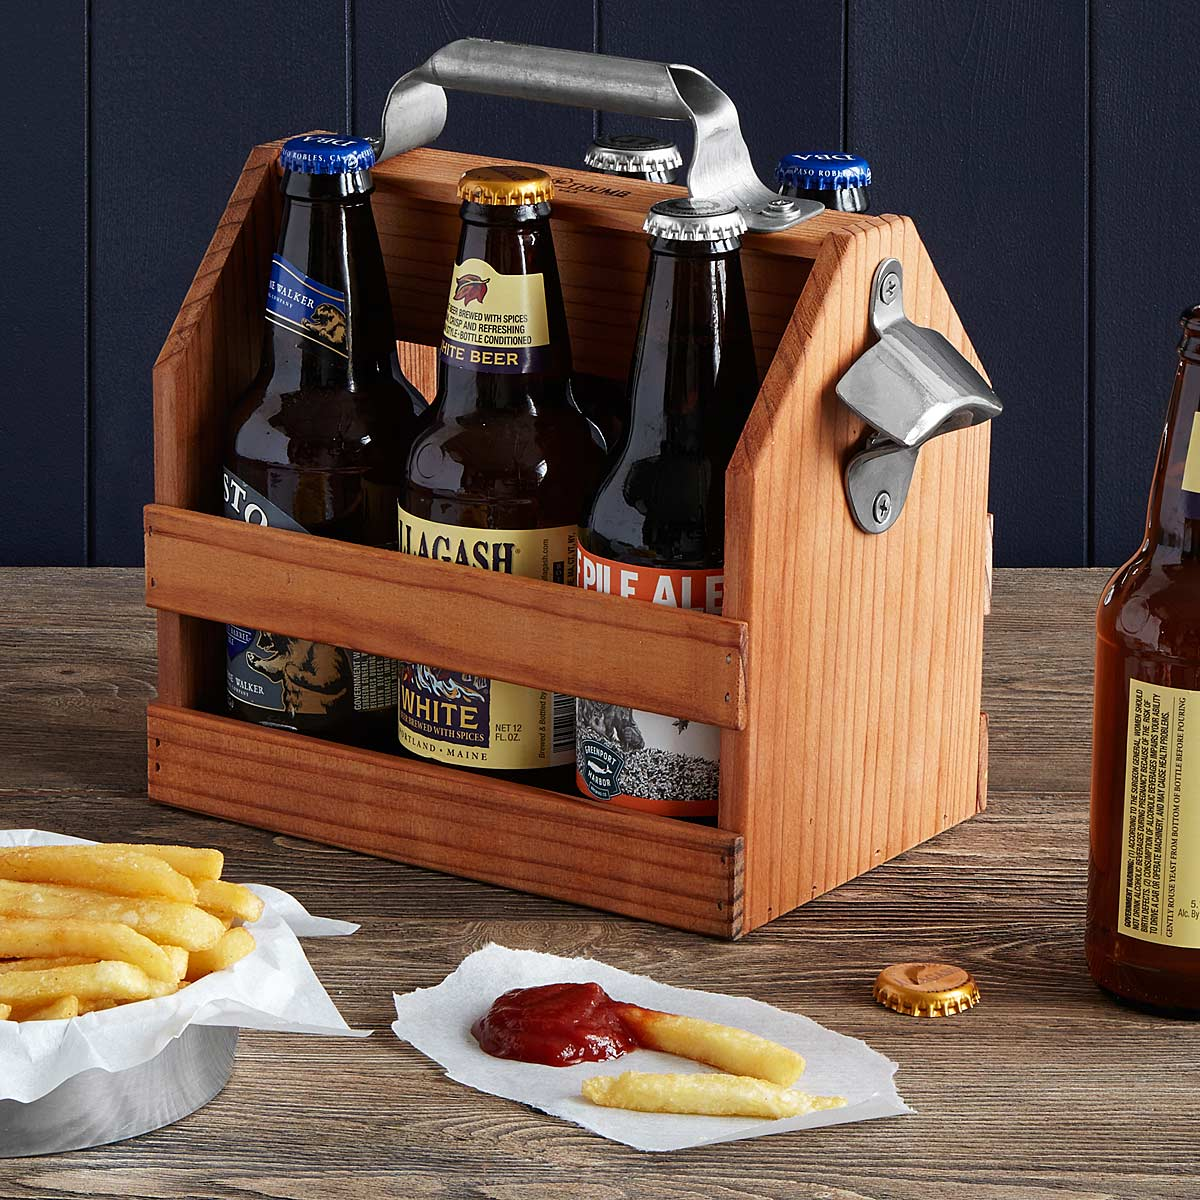 This wood six pack is handcrafted by brothers David and Christopher Steinrueck out of redwood beams reclaimed from salvage yards in the San Francisco area.